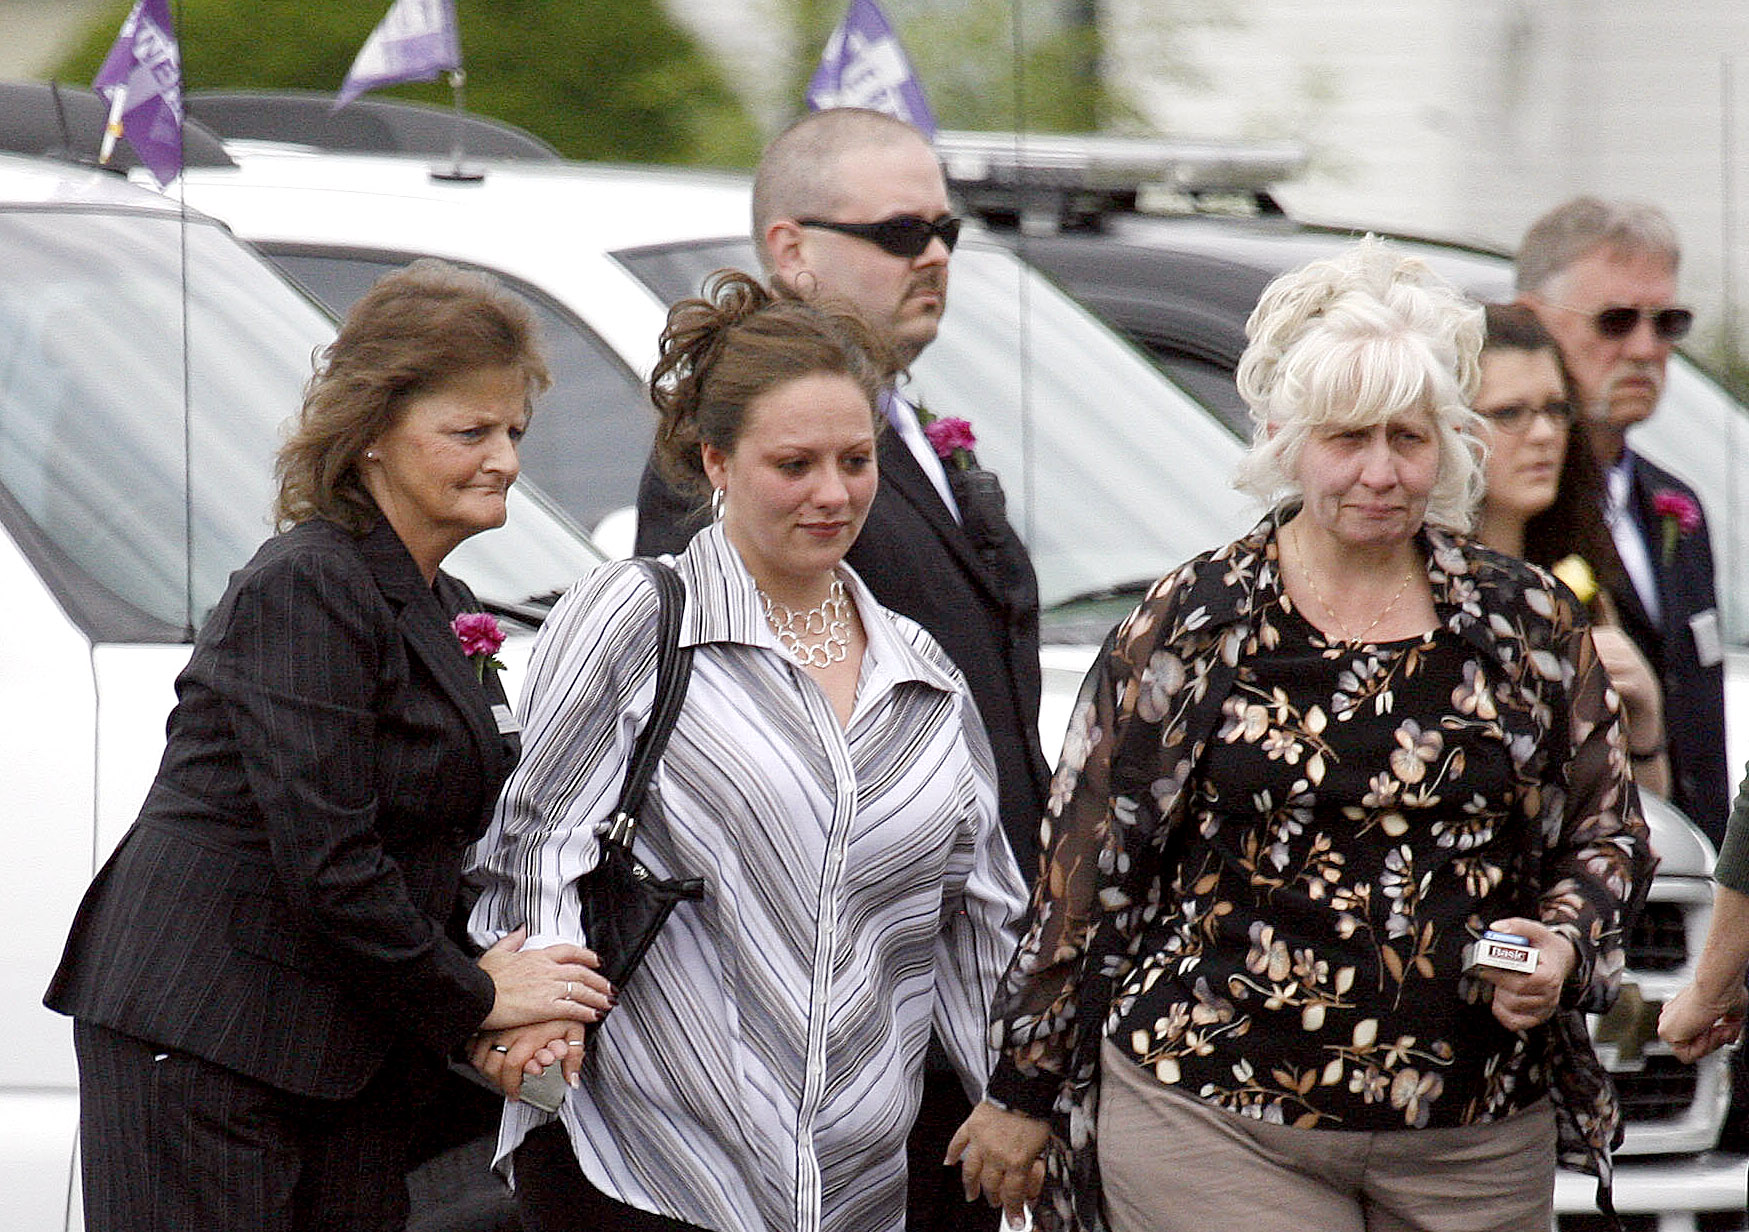 mourners gather for Nevaeh Buchanan funeral The Blade